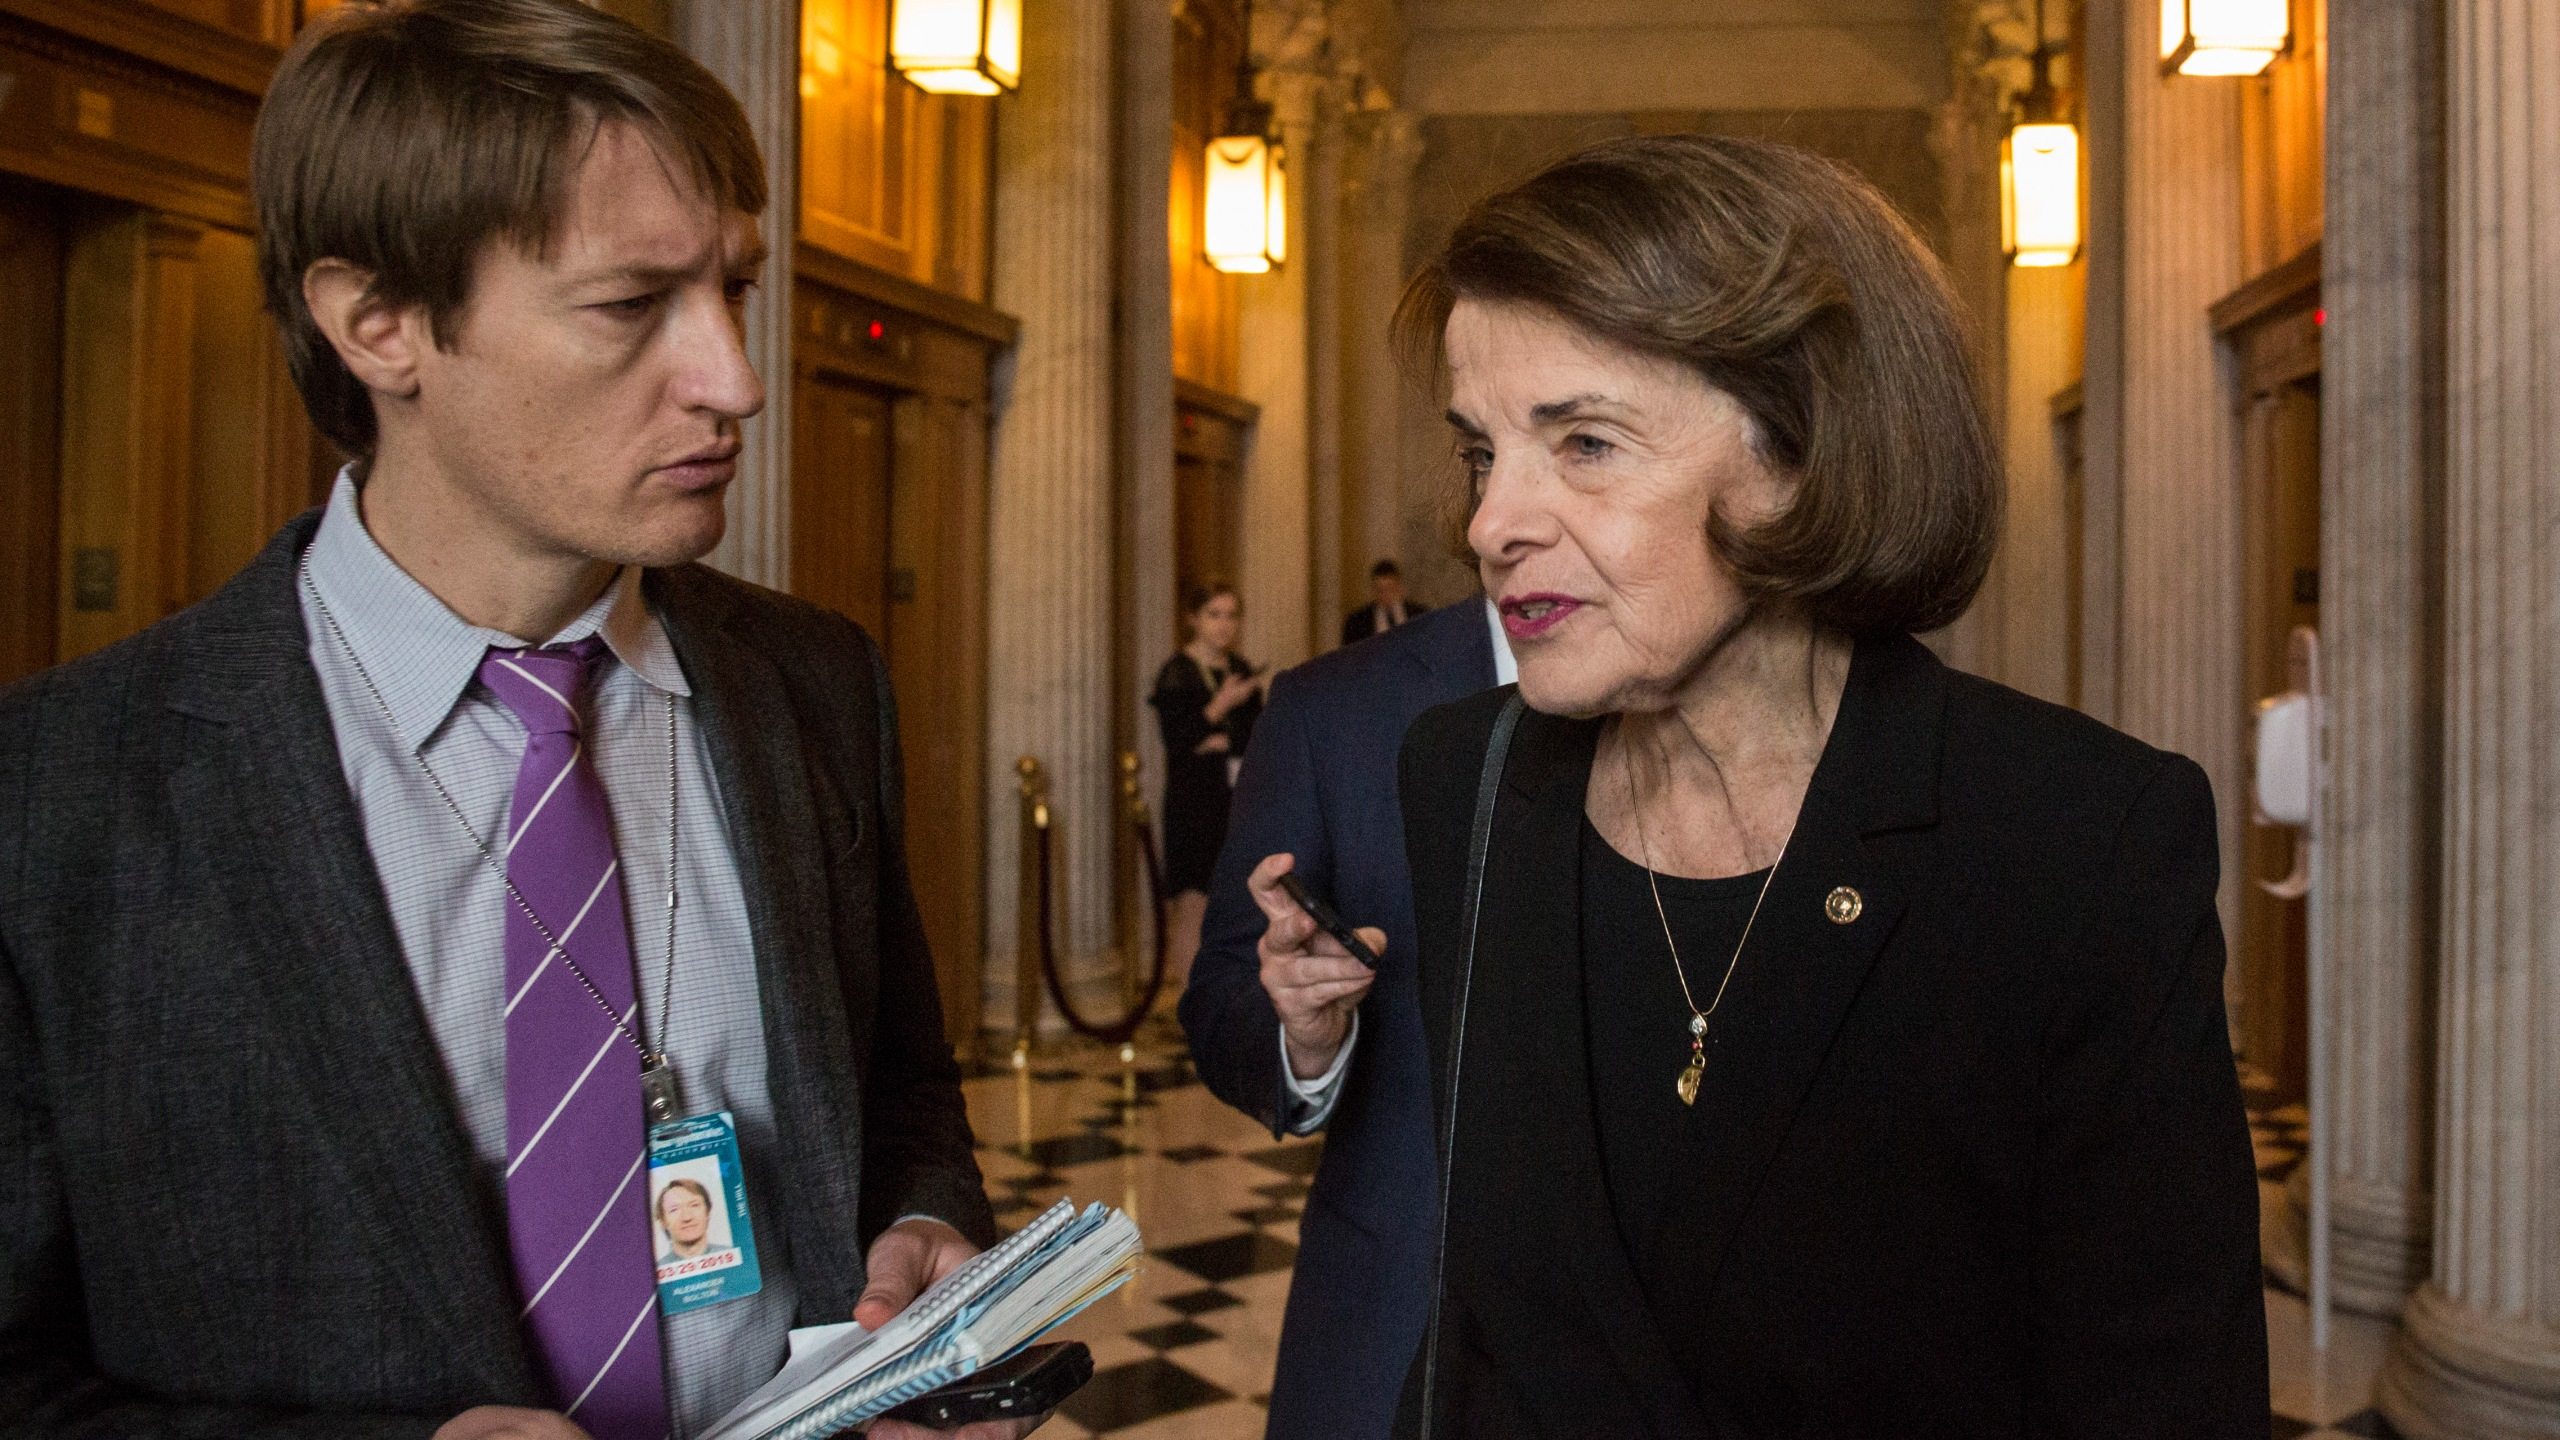 Sen. Dianne Feinstein speaks to a reporter on her way to a policy luncheon meeting at the Capitol Building in Washington, D.C., on Dec. 4, 2018. (Credit: Zach Gibson / Getty Images)